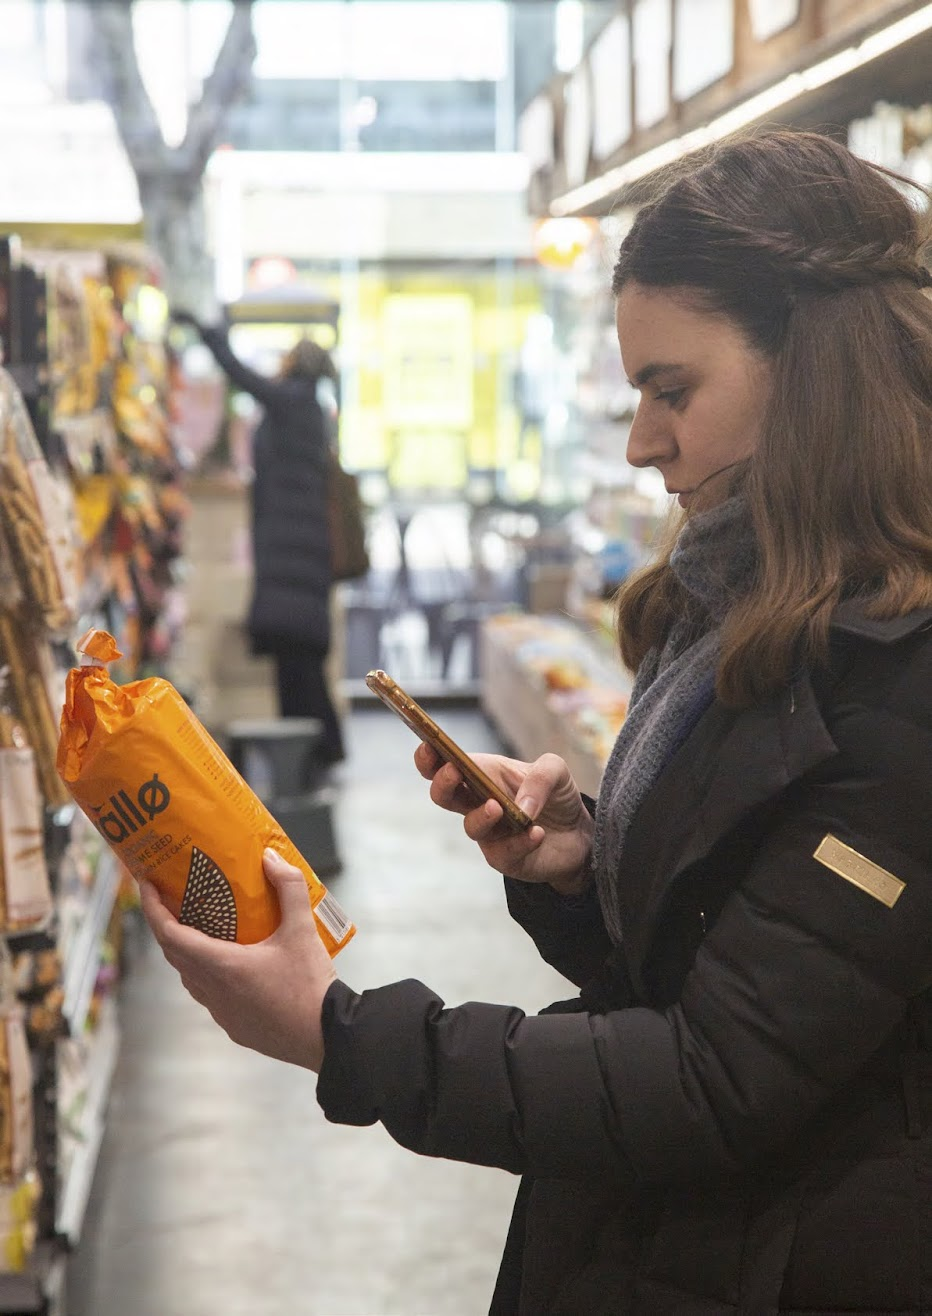 Increase store sales by 14% with Scan and Go